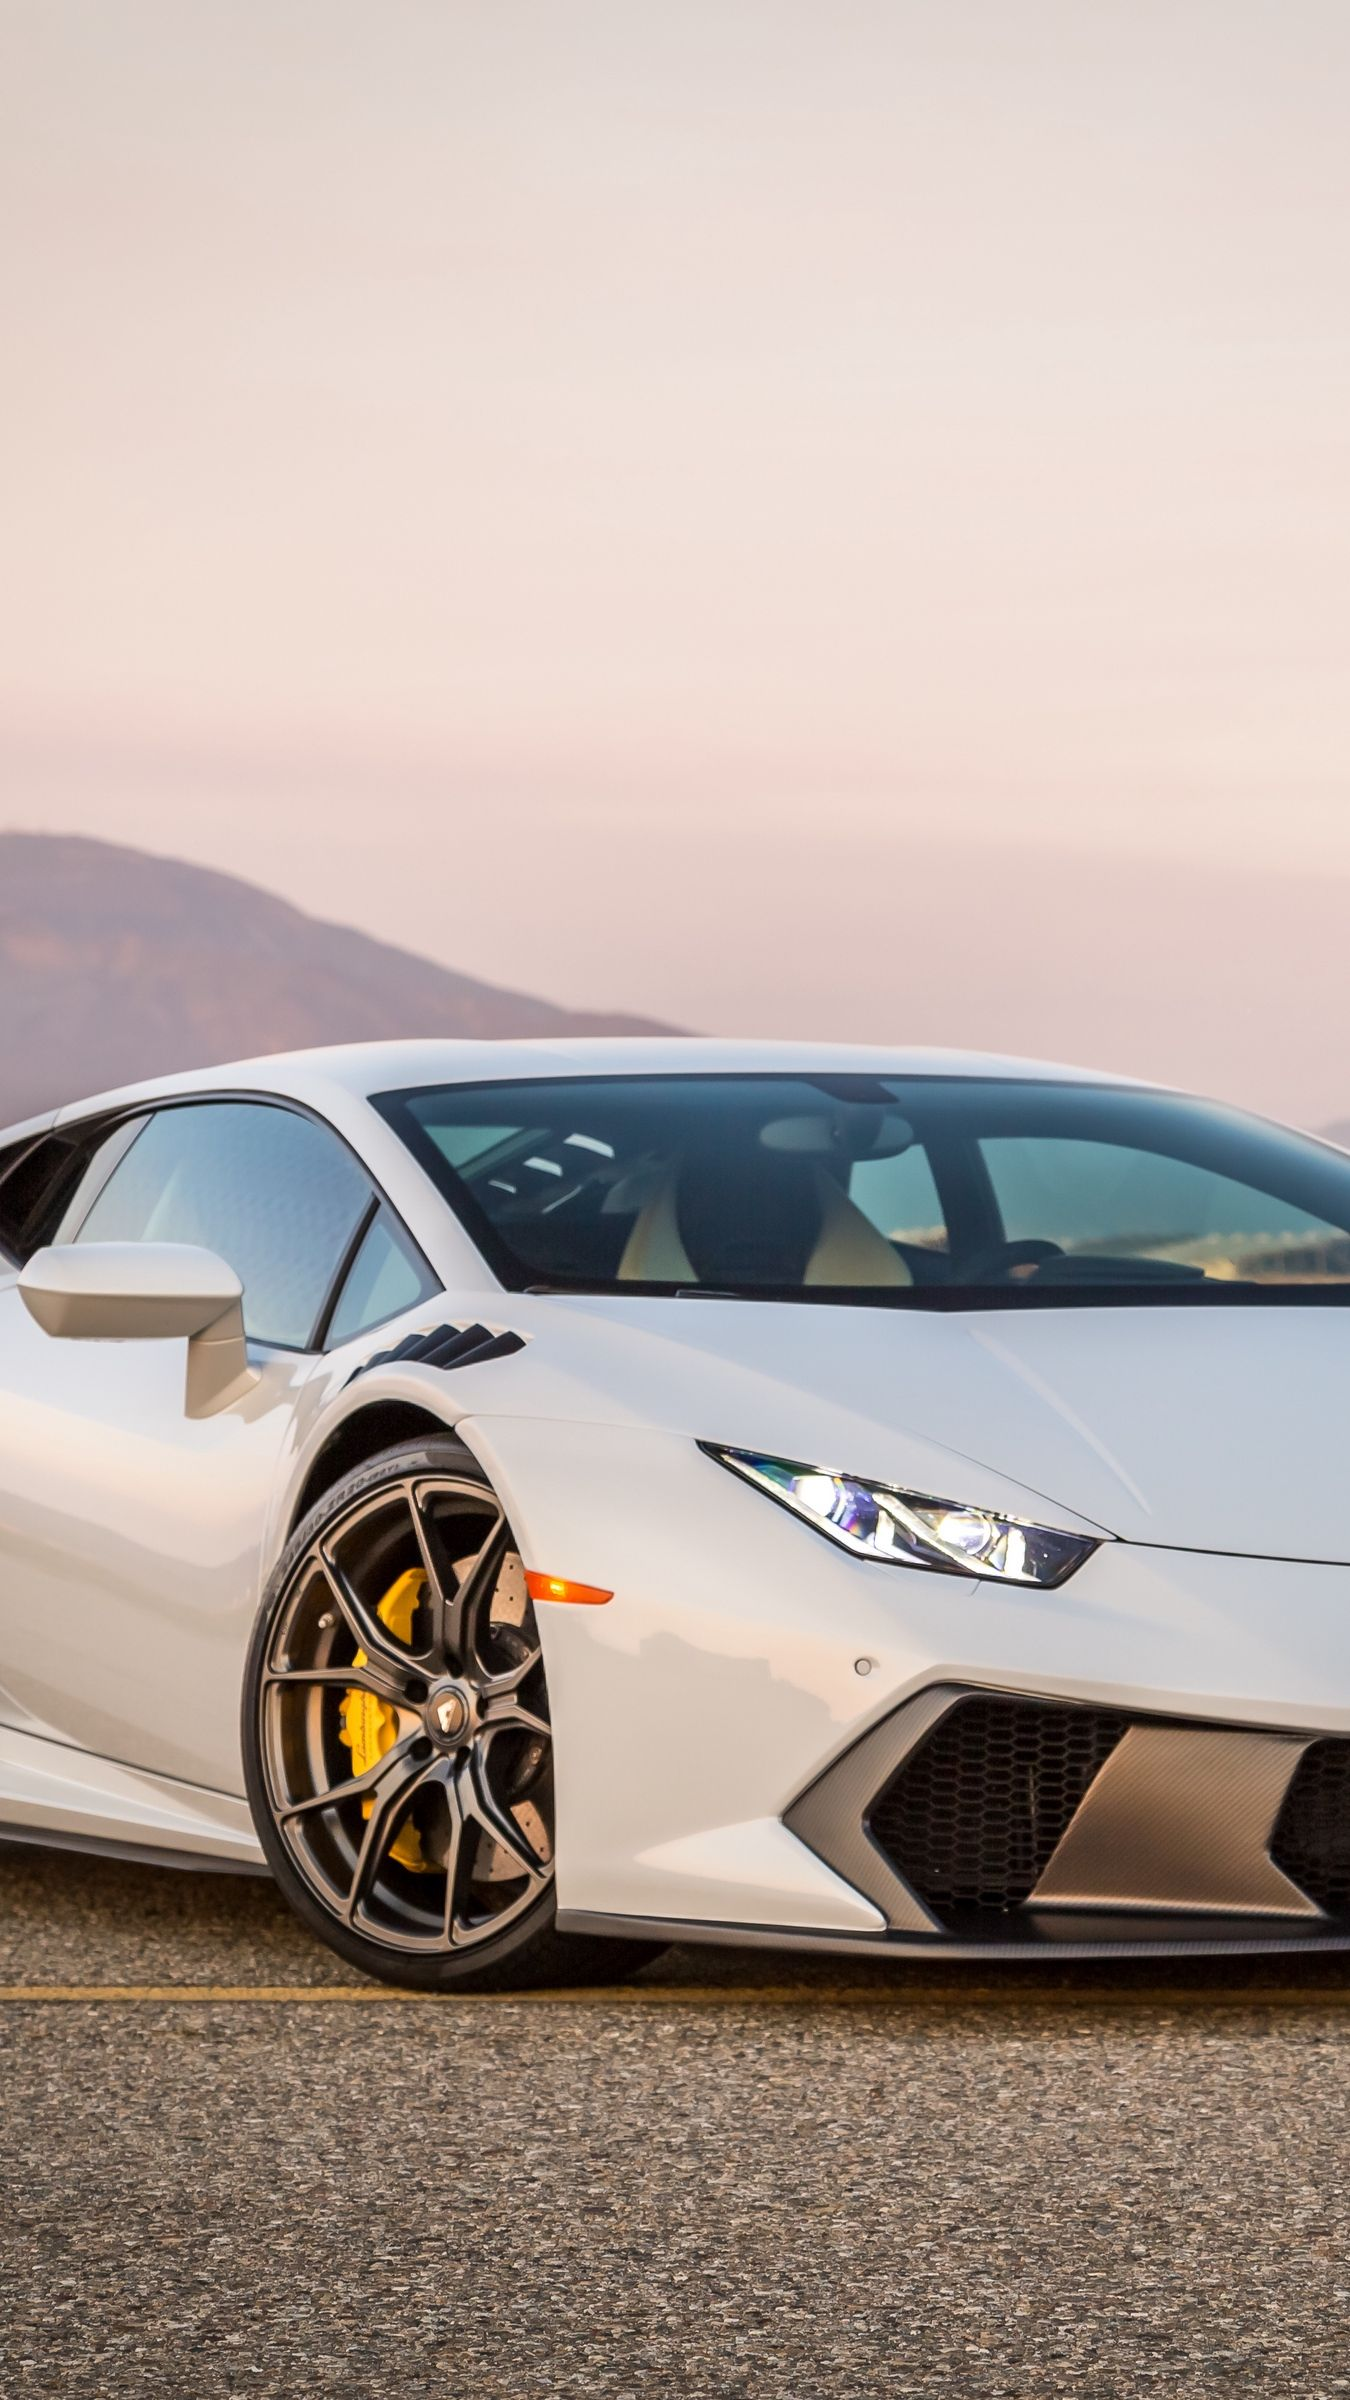 Lamborghini Huracan Iphone Wallpapers Top Free Lamborghini